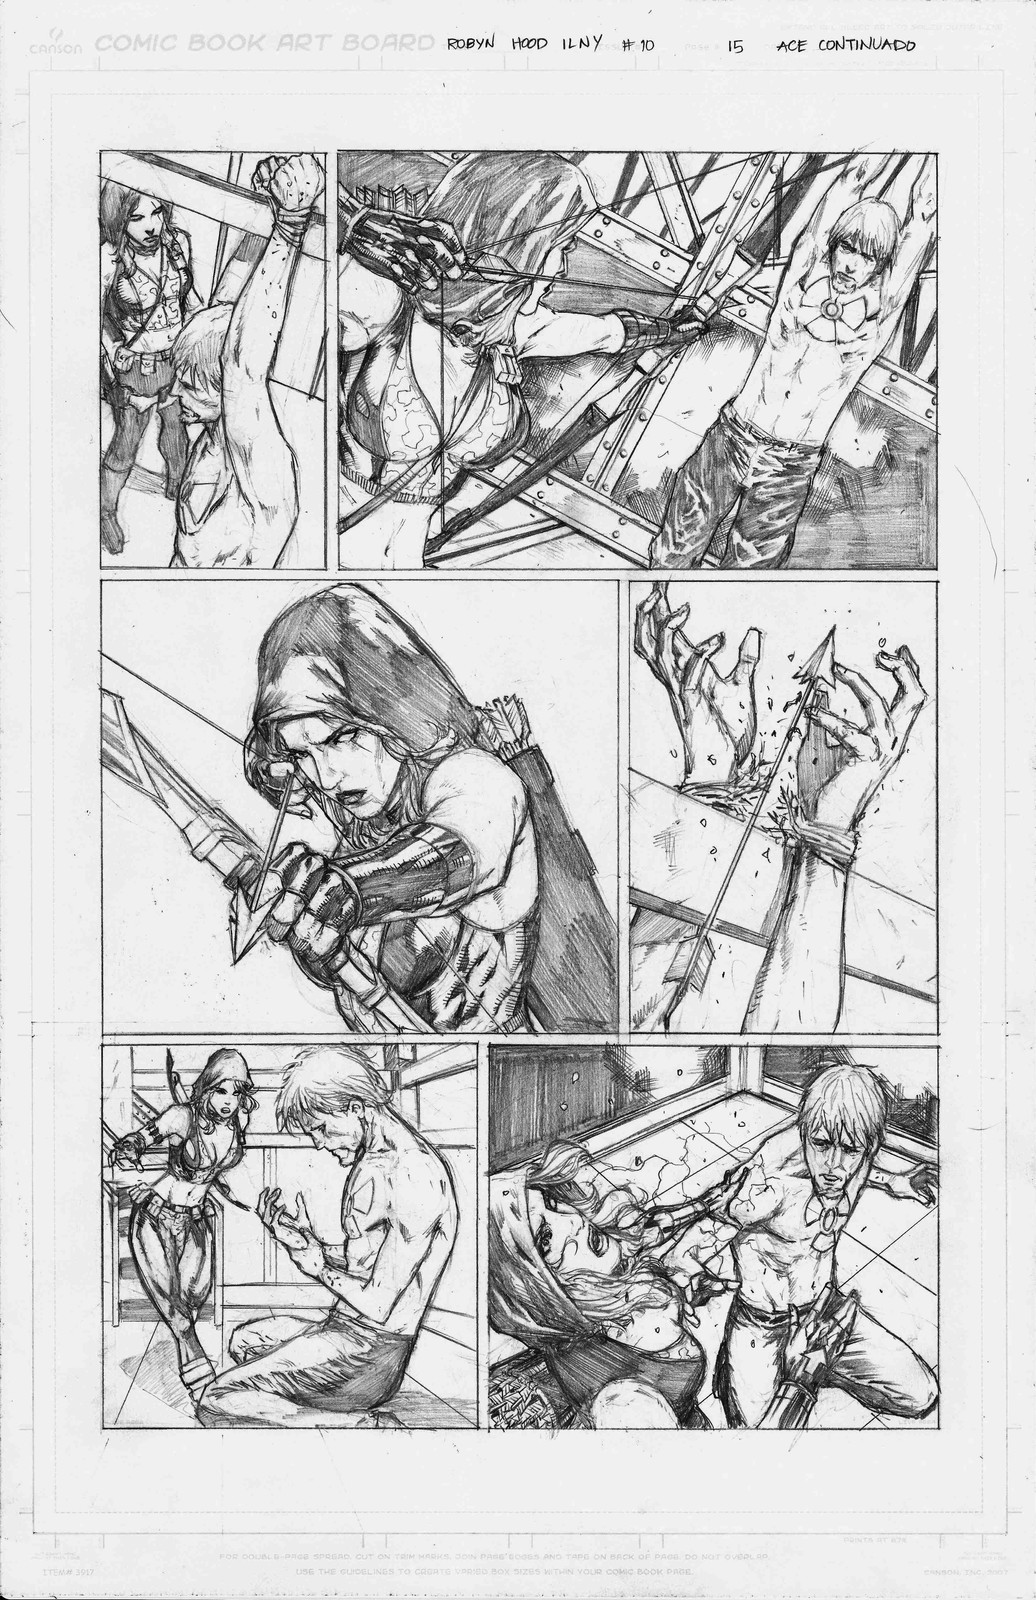 Page 15 of Robyn Hood I Love New York #10 from Zenescope Entertainment.